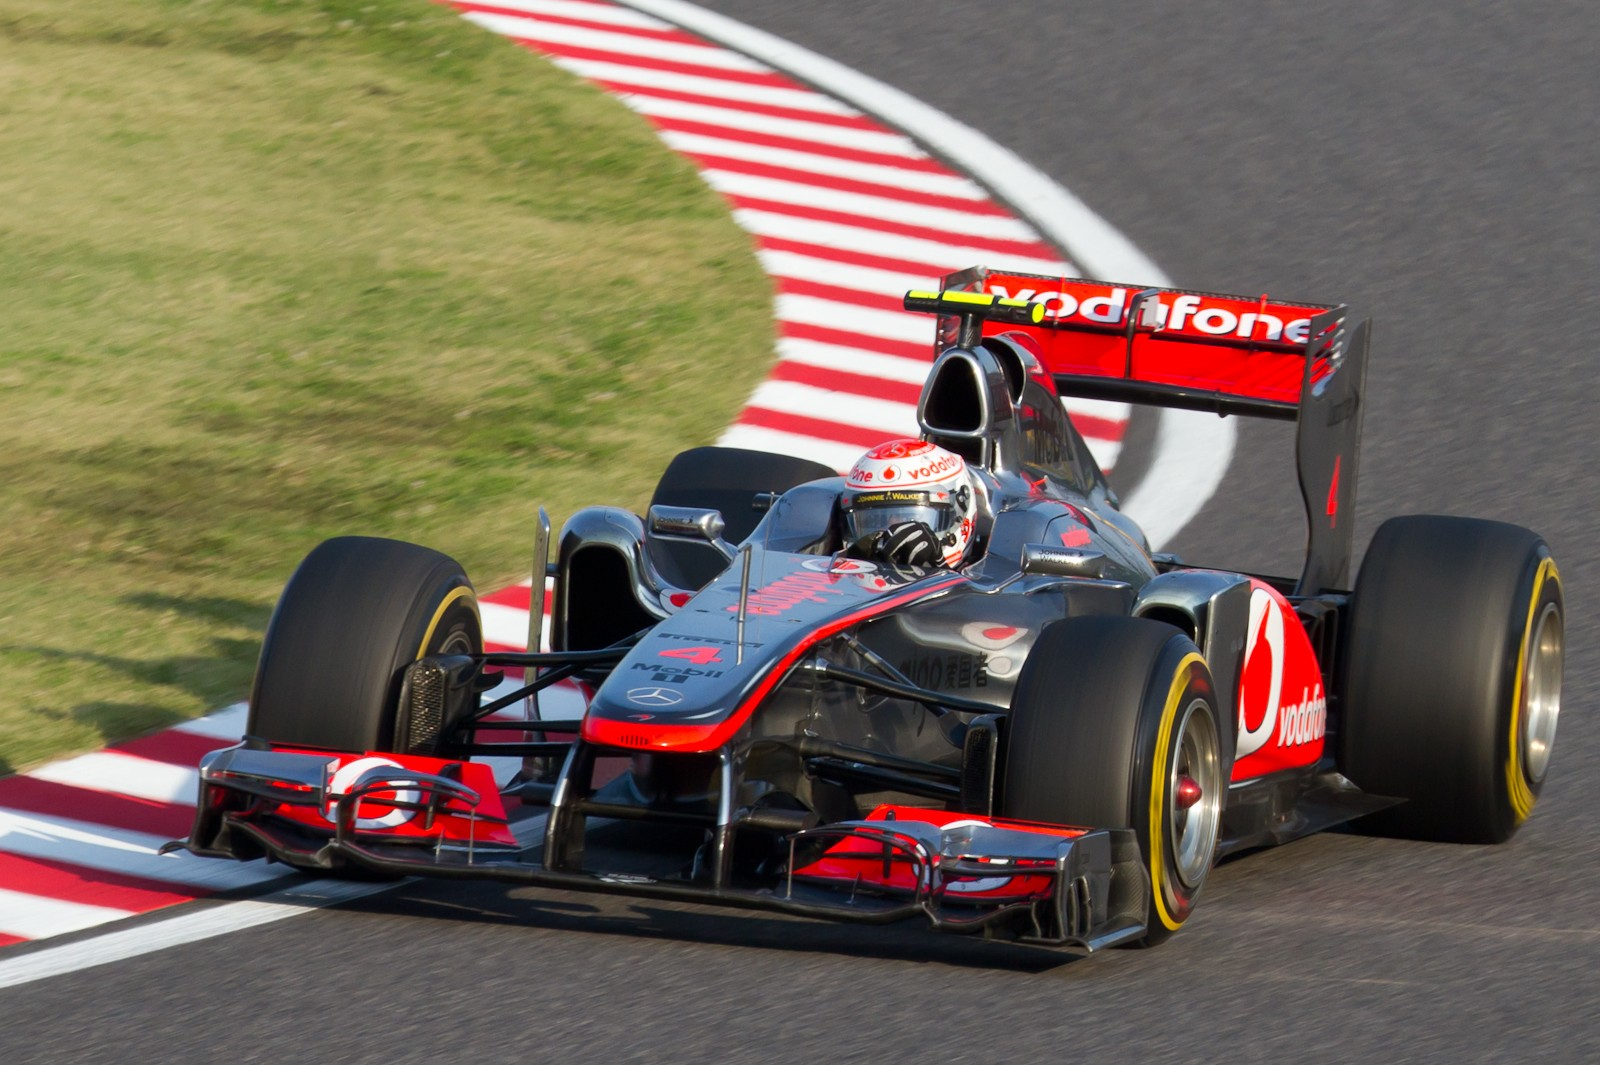 Jenson Button in 2011